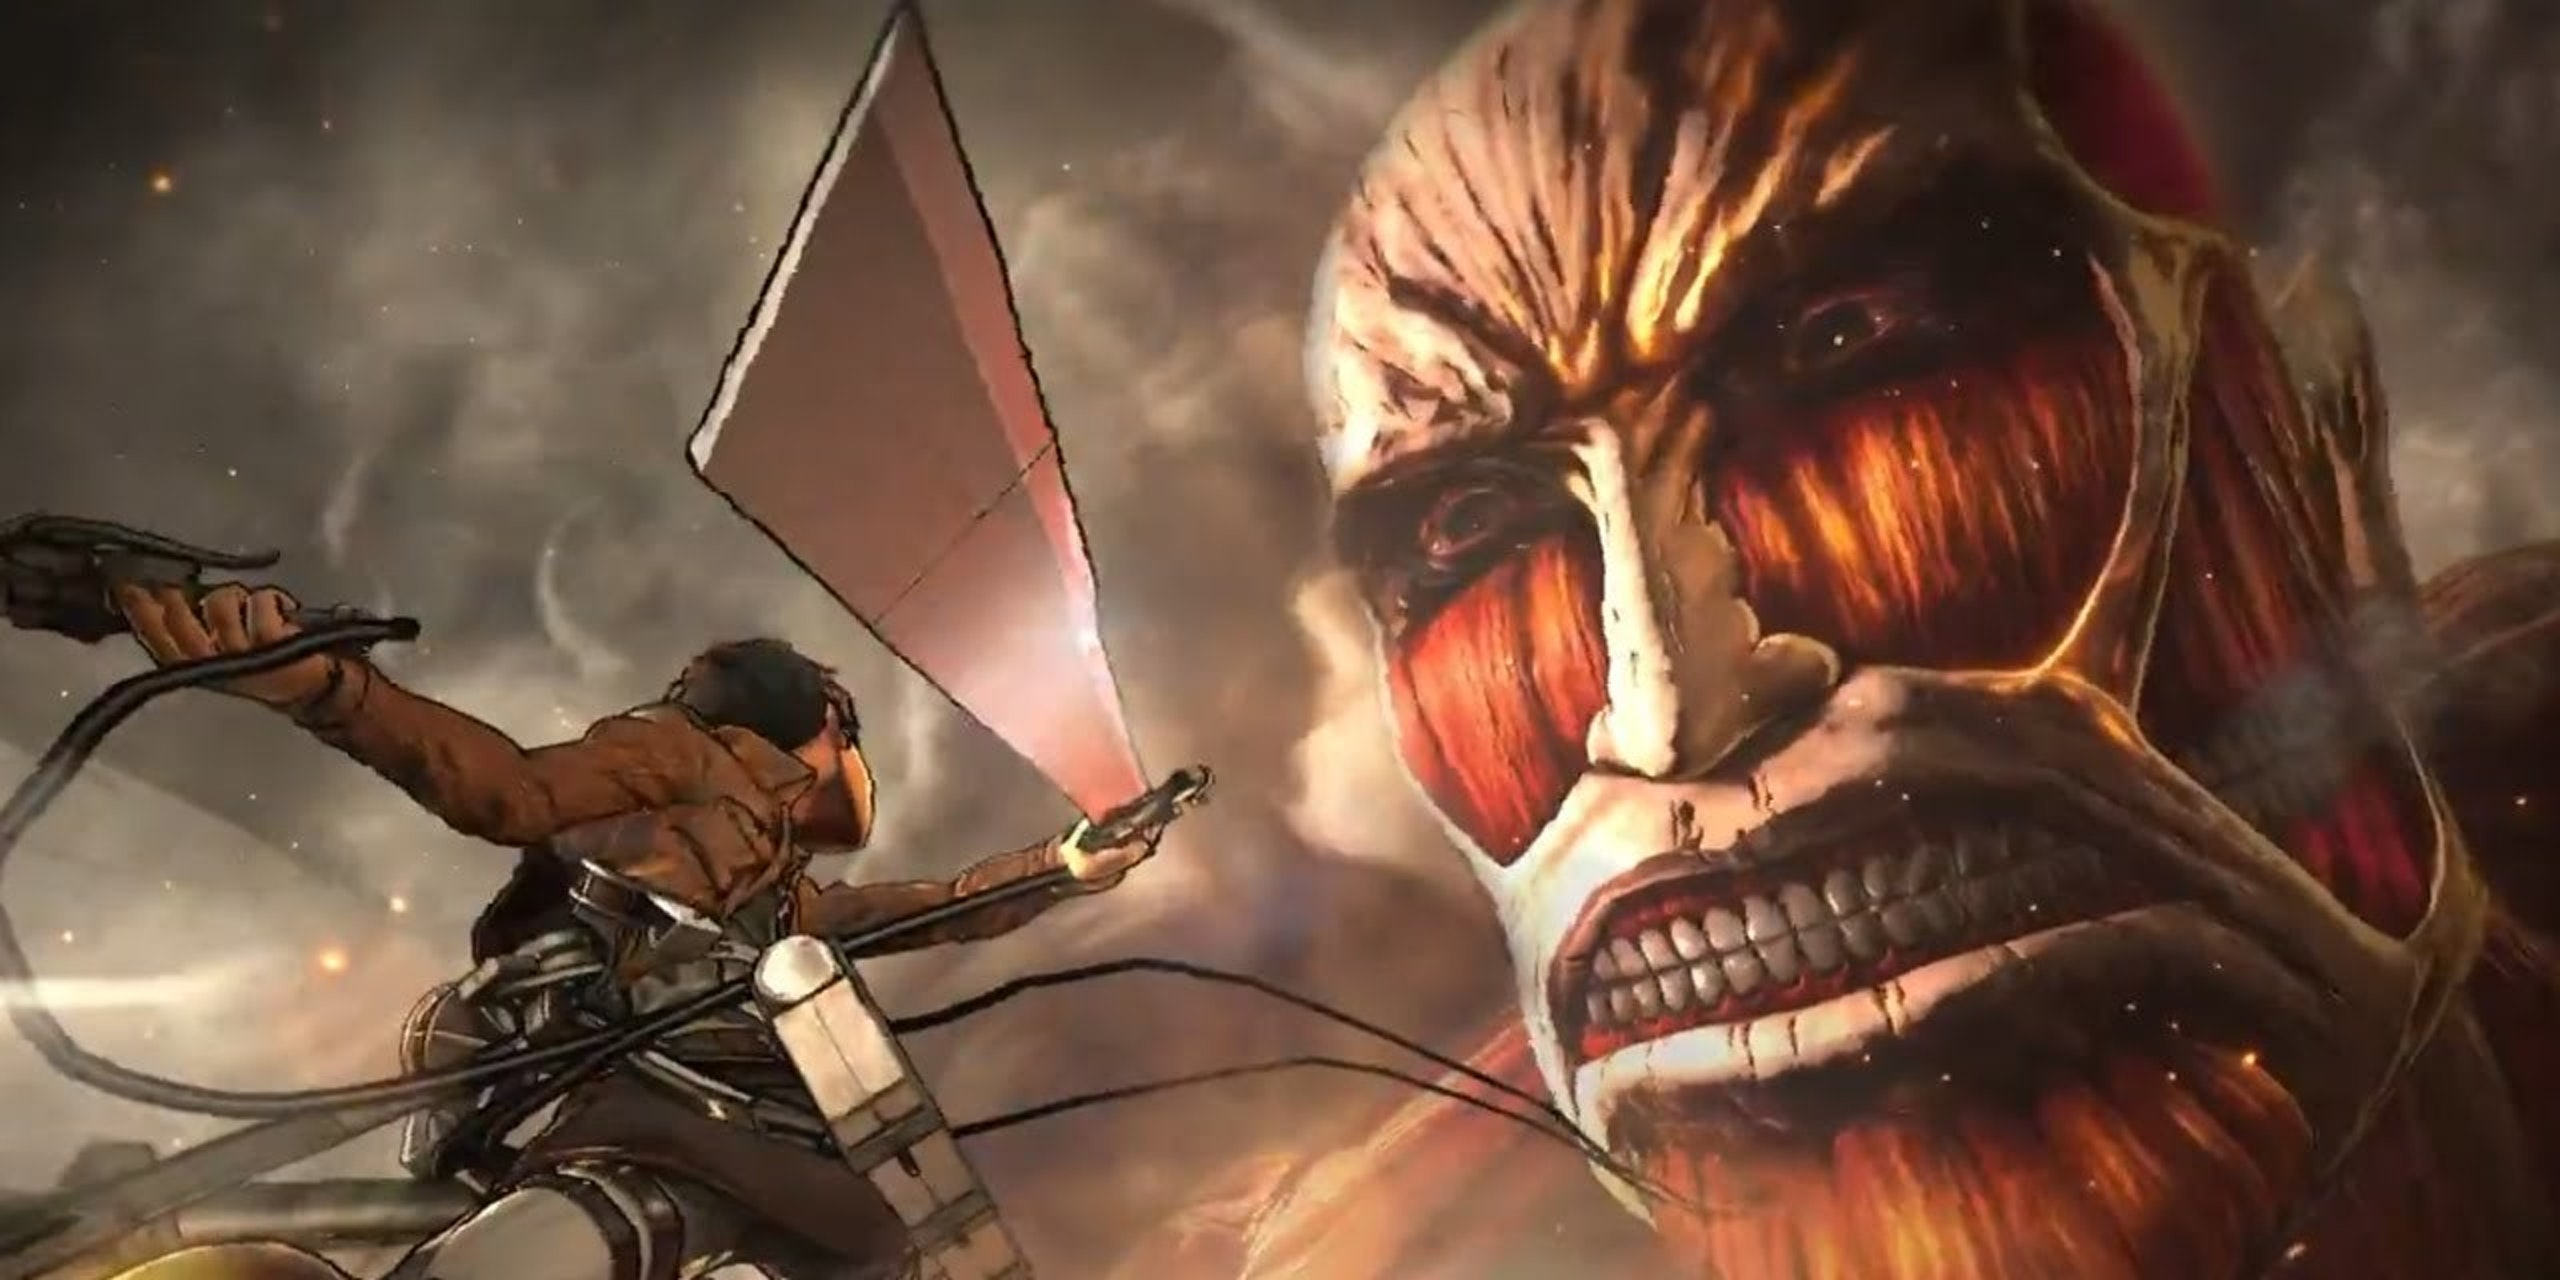 The 'Attack On Titan' Developers are Shocked To Be Big in America   Inverse